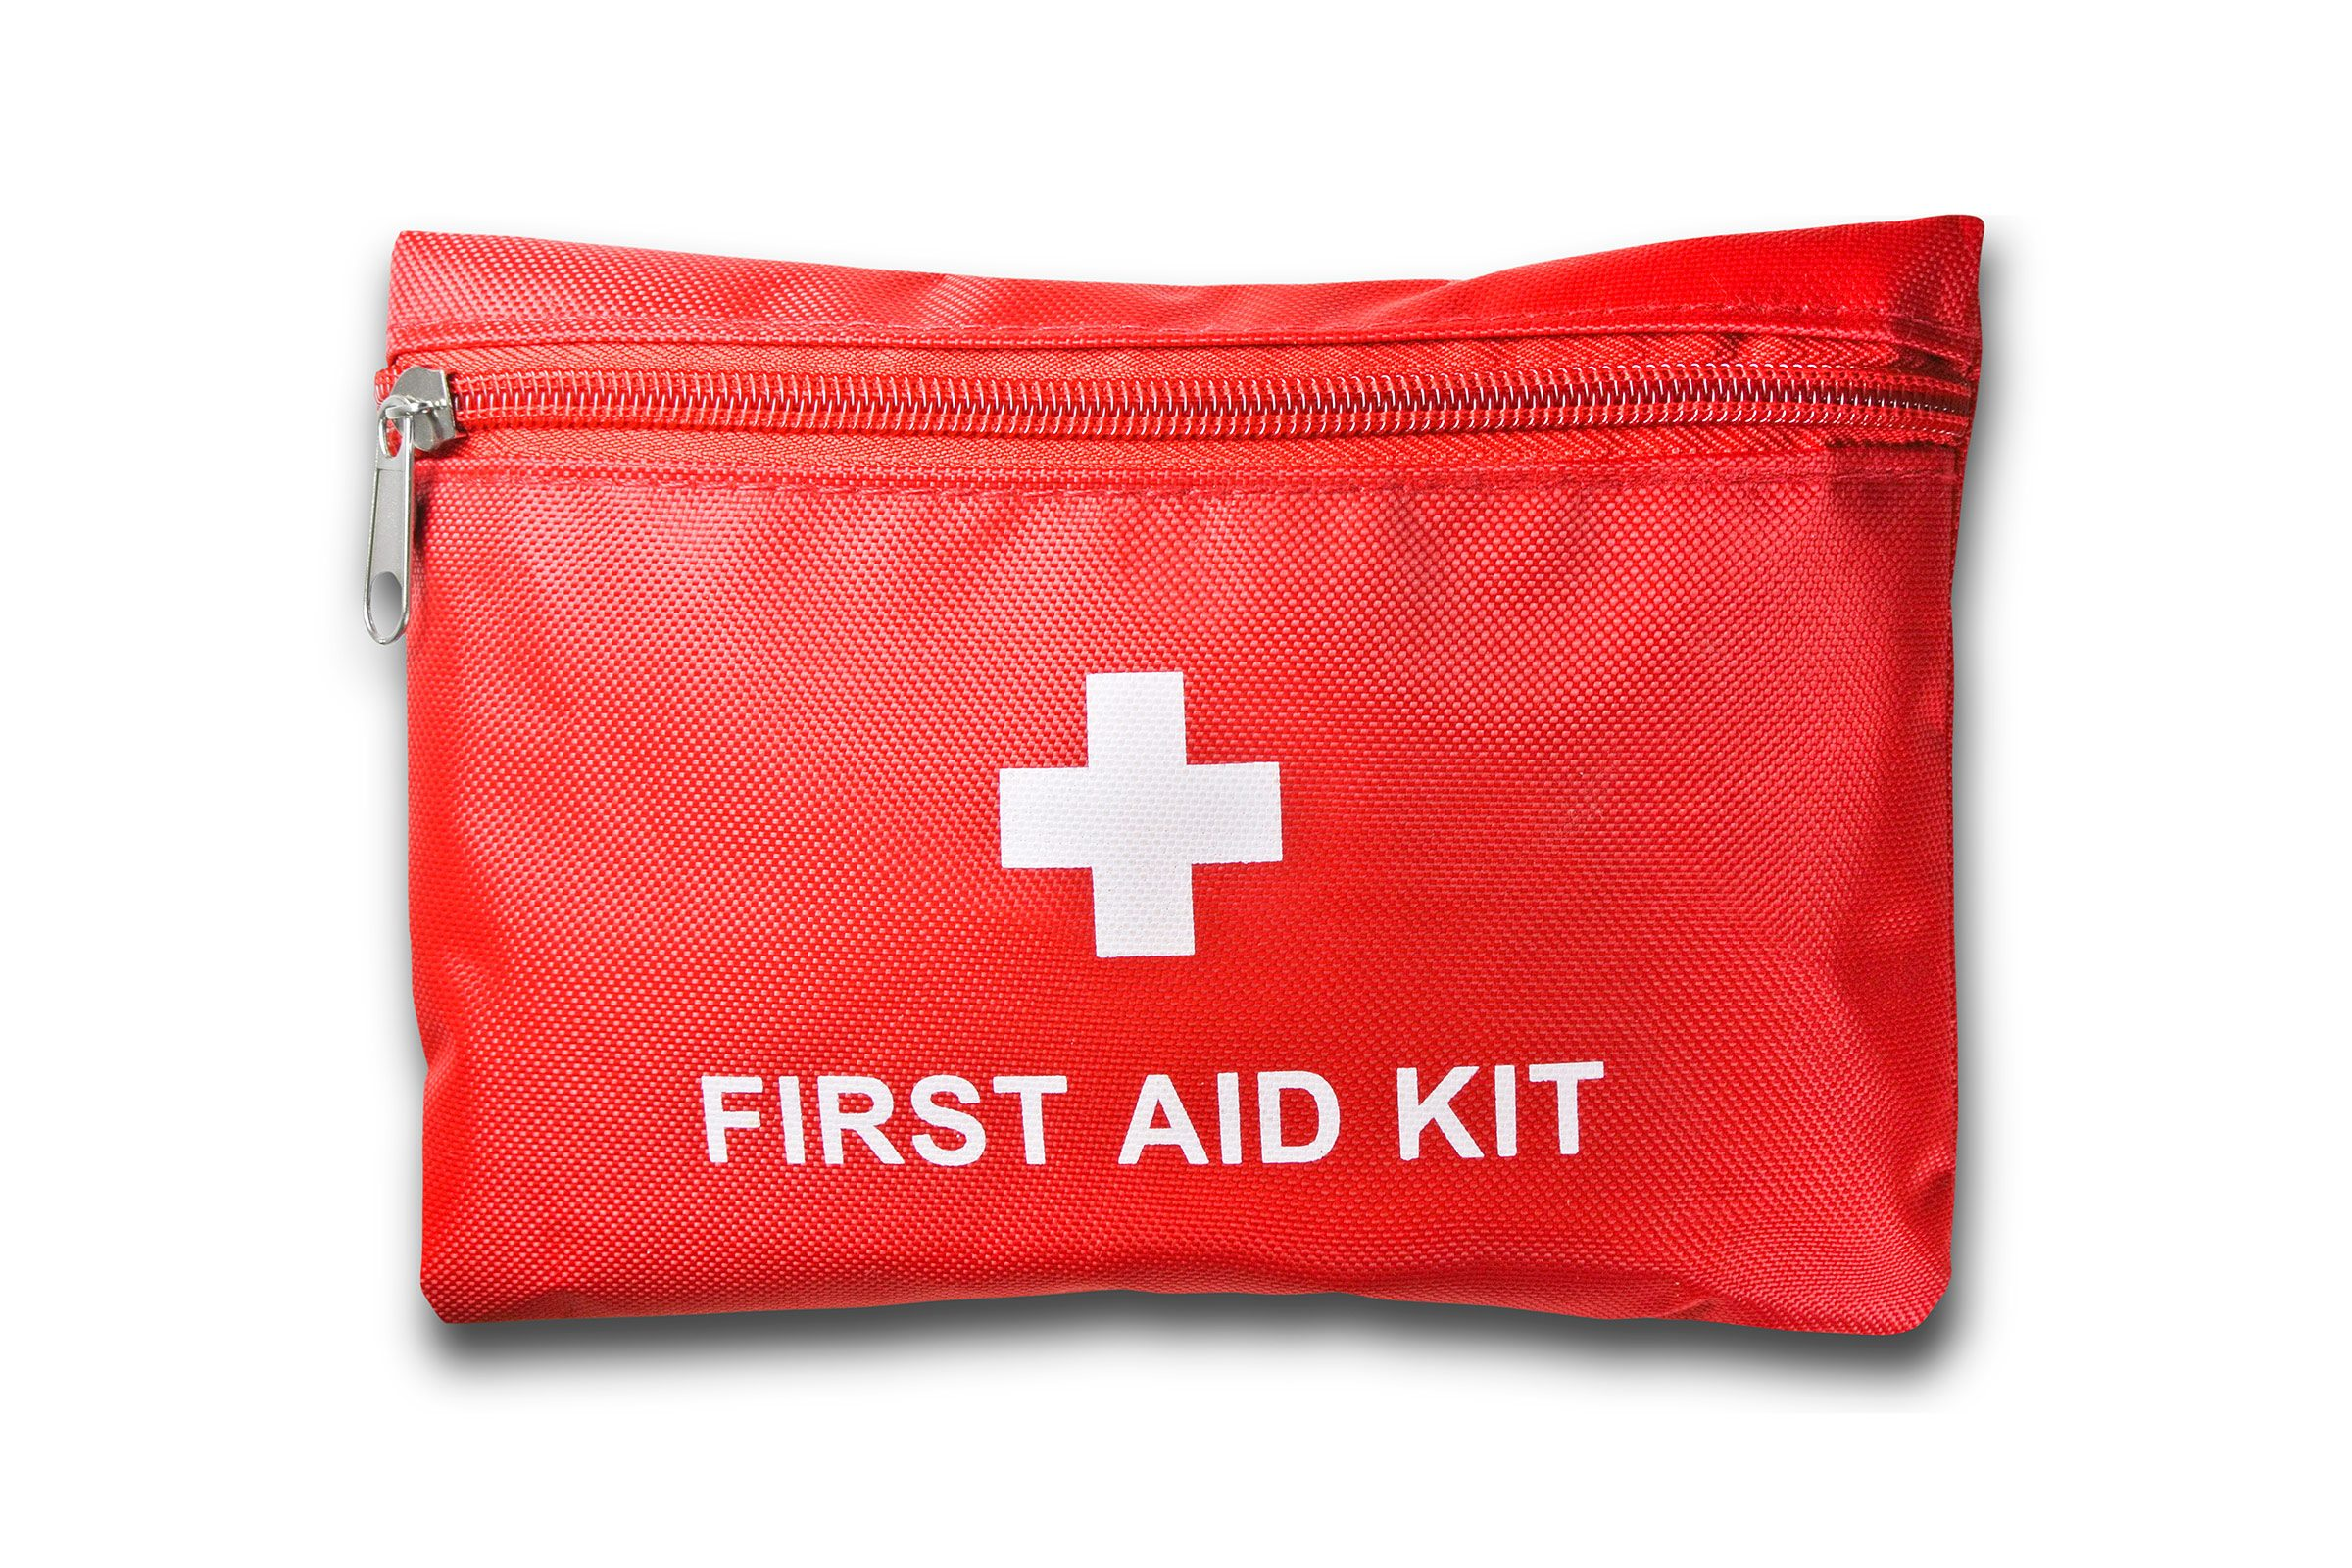 First Aid Tips: Items to Treat a Medical Emergency | Reader's Digest